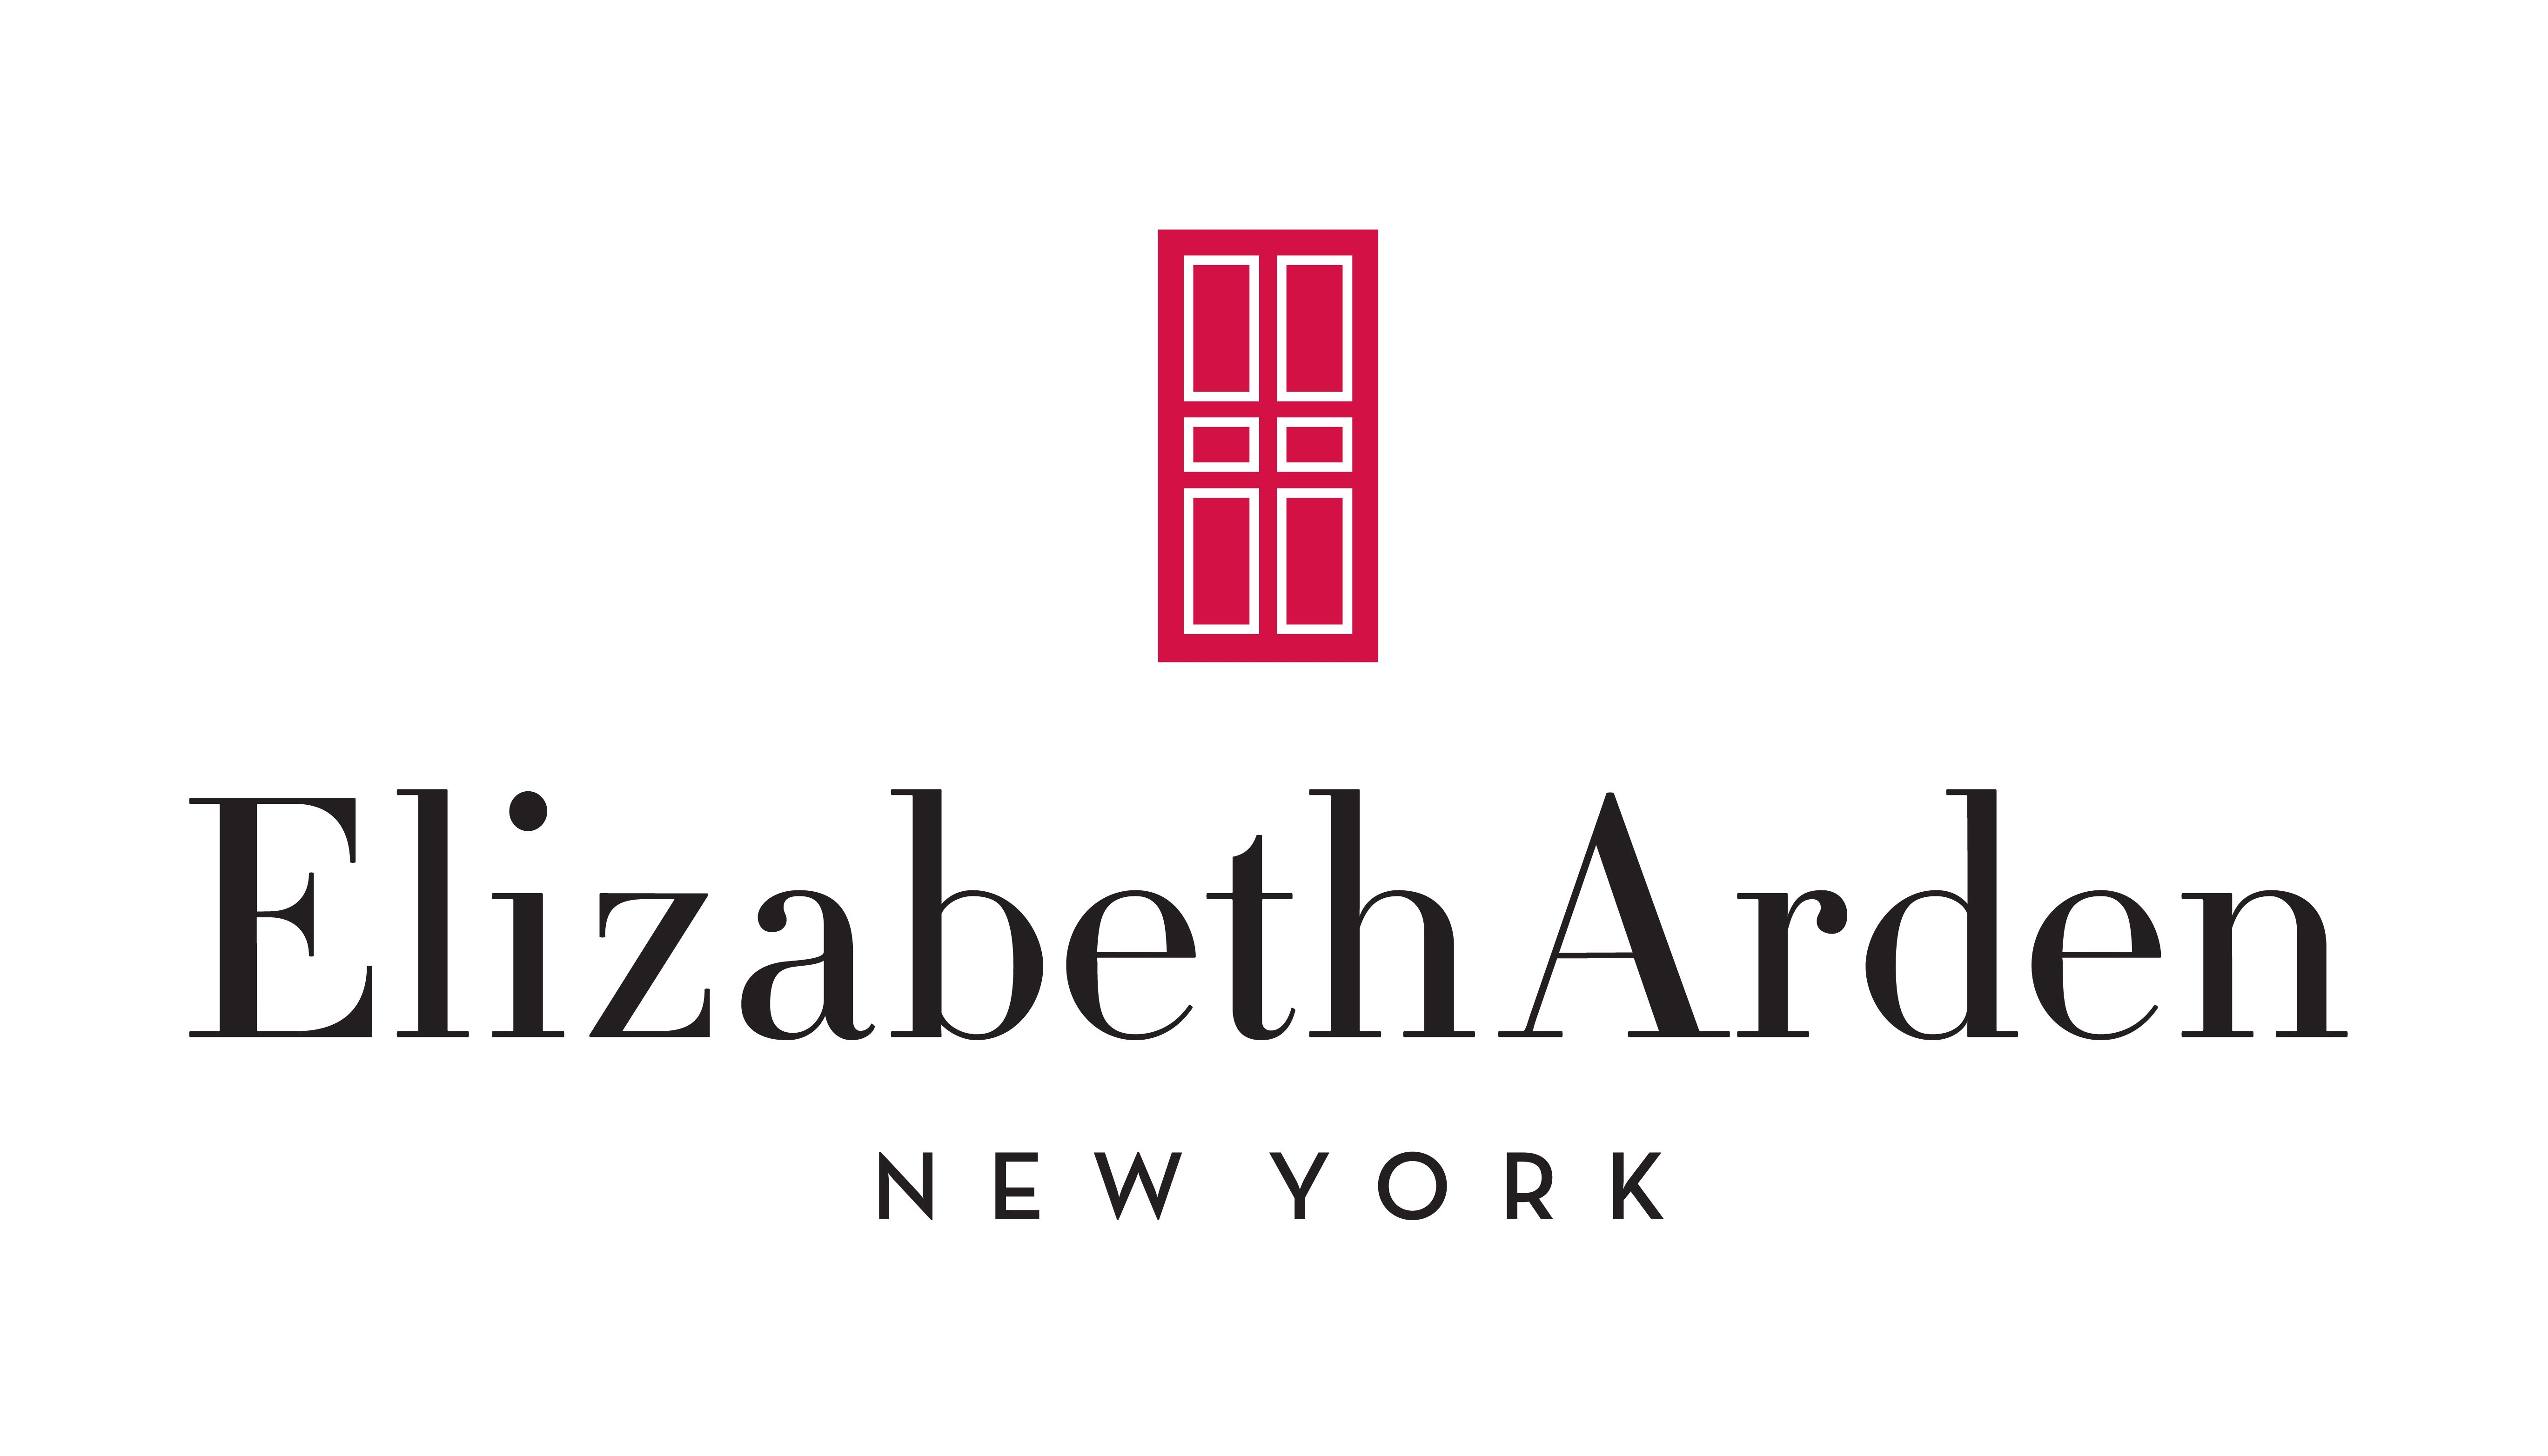 beauty logo ideas elizabeth arden i like the simple typography and